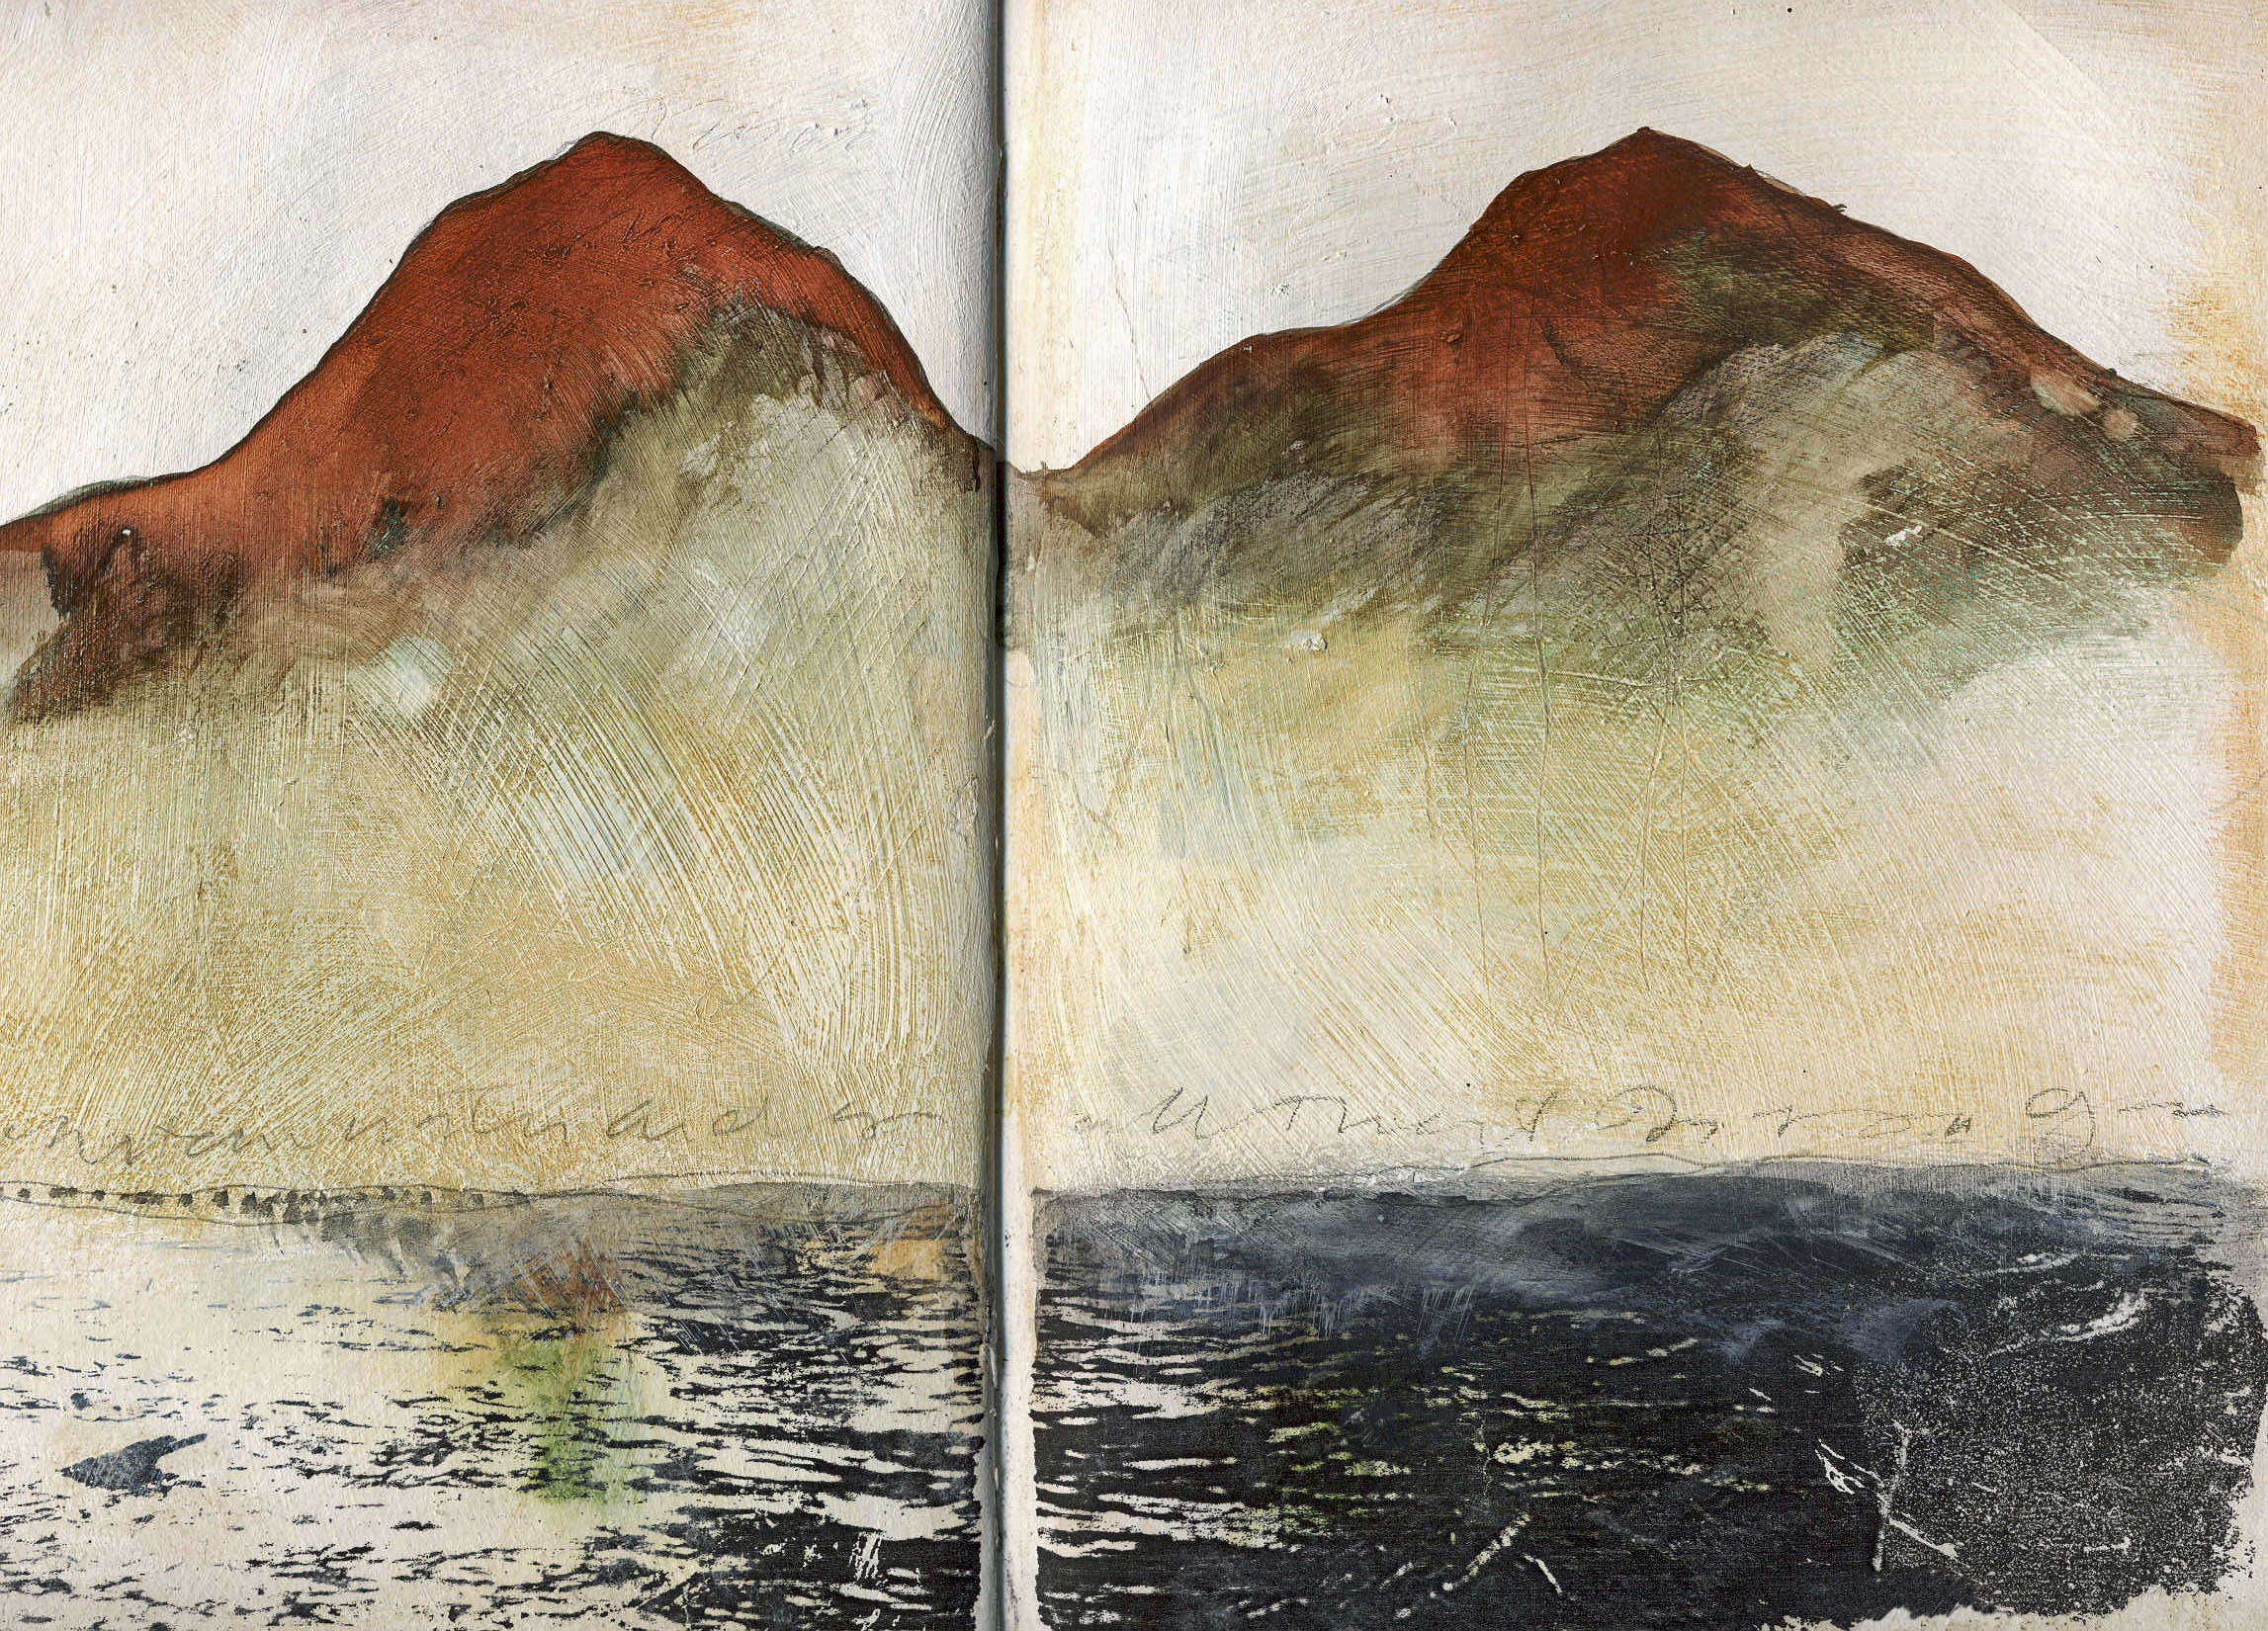 One of my favorite entries - I was in southern Colorado at a friends artist retreat called Mountain Water. The mountains were inspired by the Spanish Peaks but no such water like this exists in that arid region.